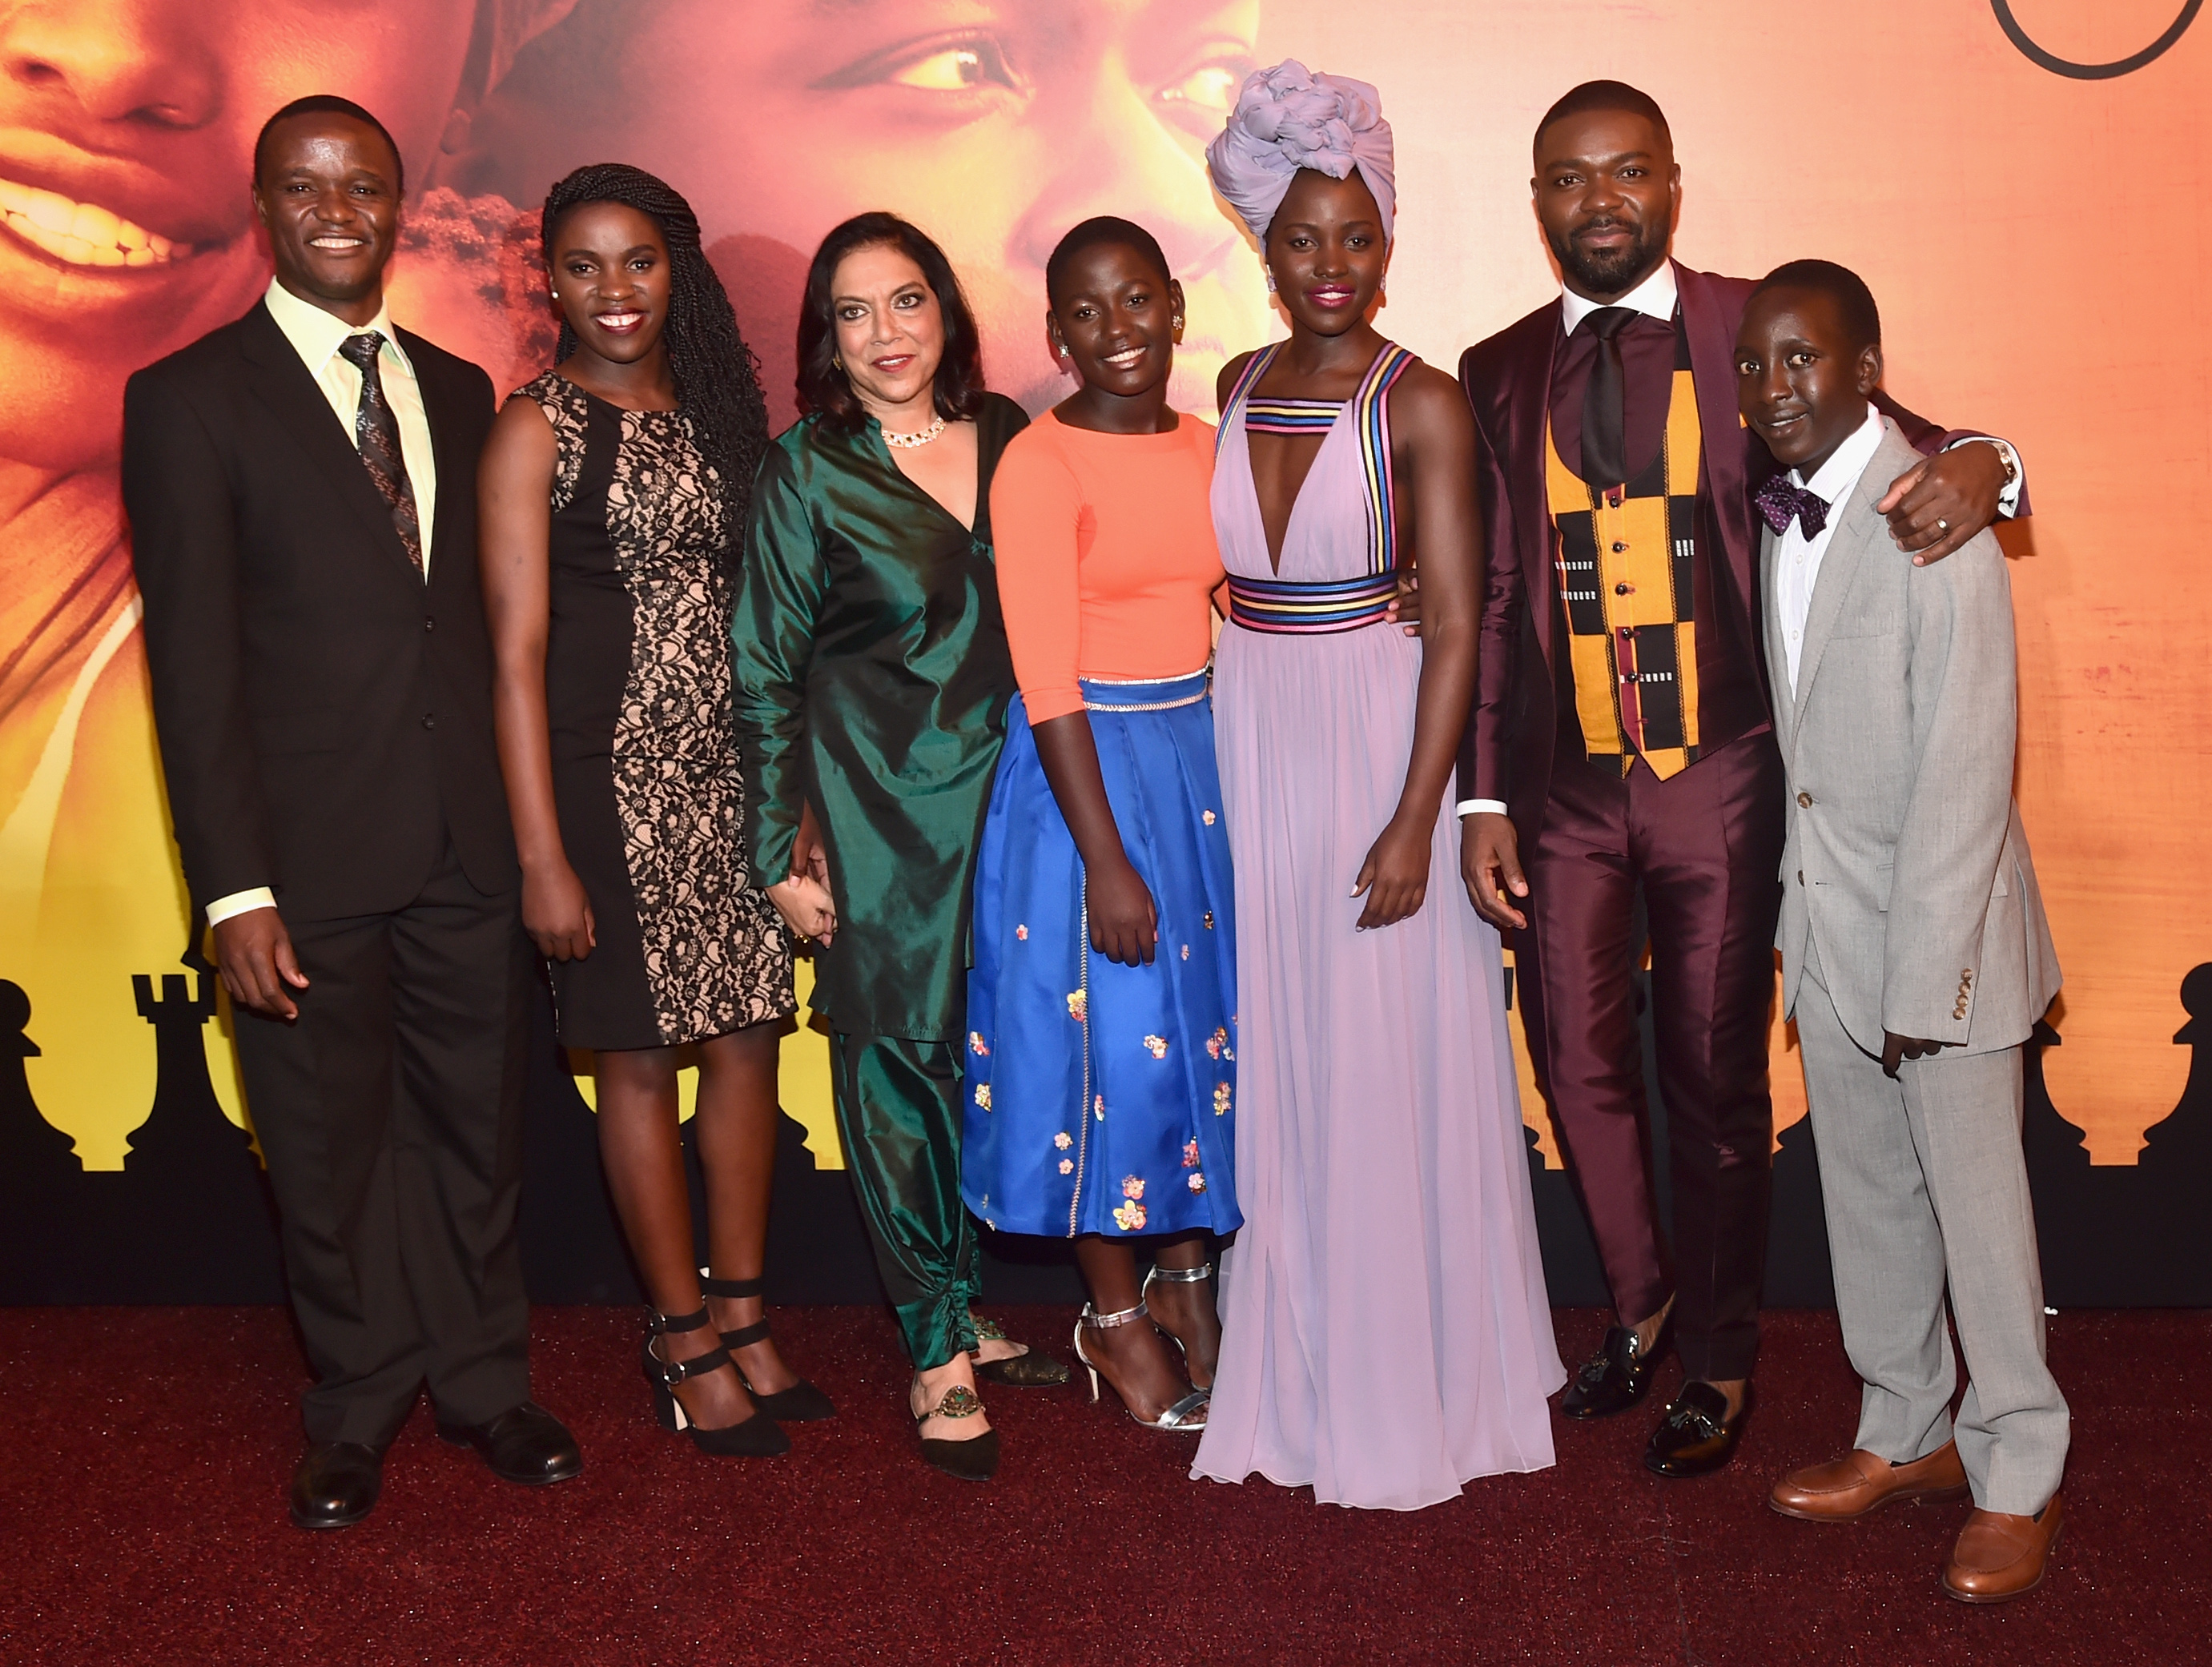 "HOLLYWOOD, CA - SEPTEMBER 20: (L-R) Chess Coach and Director of Sports Outreach in Uganda, Robert Katende, Ugandan national chess champion Phiona Mutesi, Director Mira Nair, actors Madina Nalwanga, Lupita Nyong'o, David Oyelowo and Martin Kabanza arrive at the U.S. premiere of Disney's ""Queen of Katwe"" at the El Capitan Theatre in Hollywood. The film, starring David Oyelowo, Oscar winner Lupita Nyong'o and newcomer Madina Nalwanga, is directed by Mira Nair and opens in U.S. theaters in limited release on September 23, expanding wide September 30, 2016. On September 20, 2016 in Hollywood, California. (Photo by Alberto E. Rodriguez/Getty Images for Disney) *** Local Caption *** Robert Katende; Phiona Mutesi; Mira Nair; Madina Nalwanga; Lupita Nyong'o; David Oyelowo; Martin Kabanza"